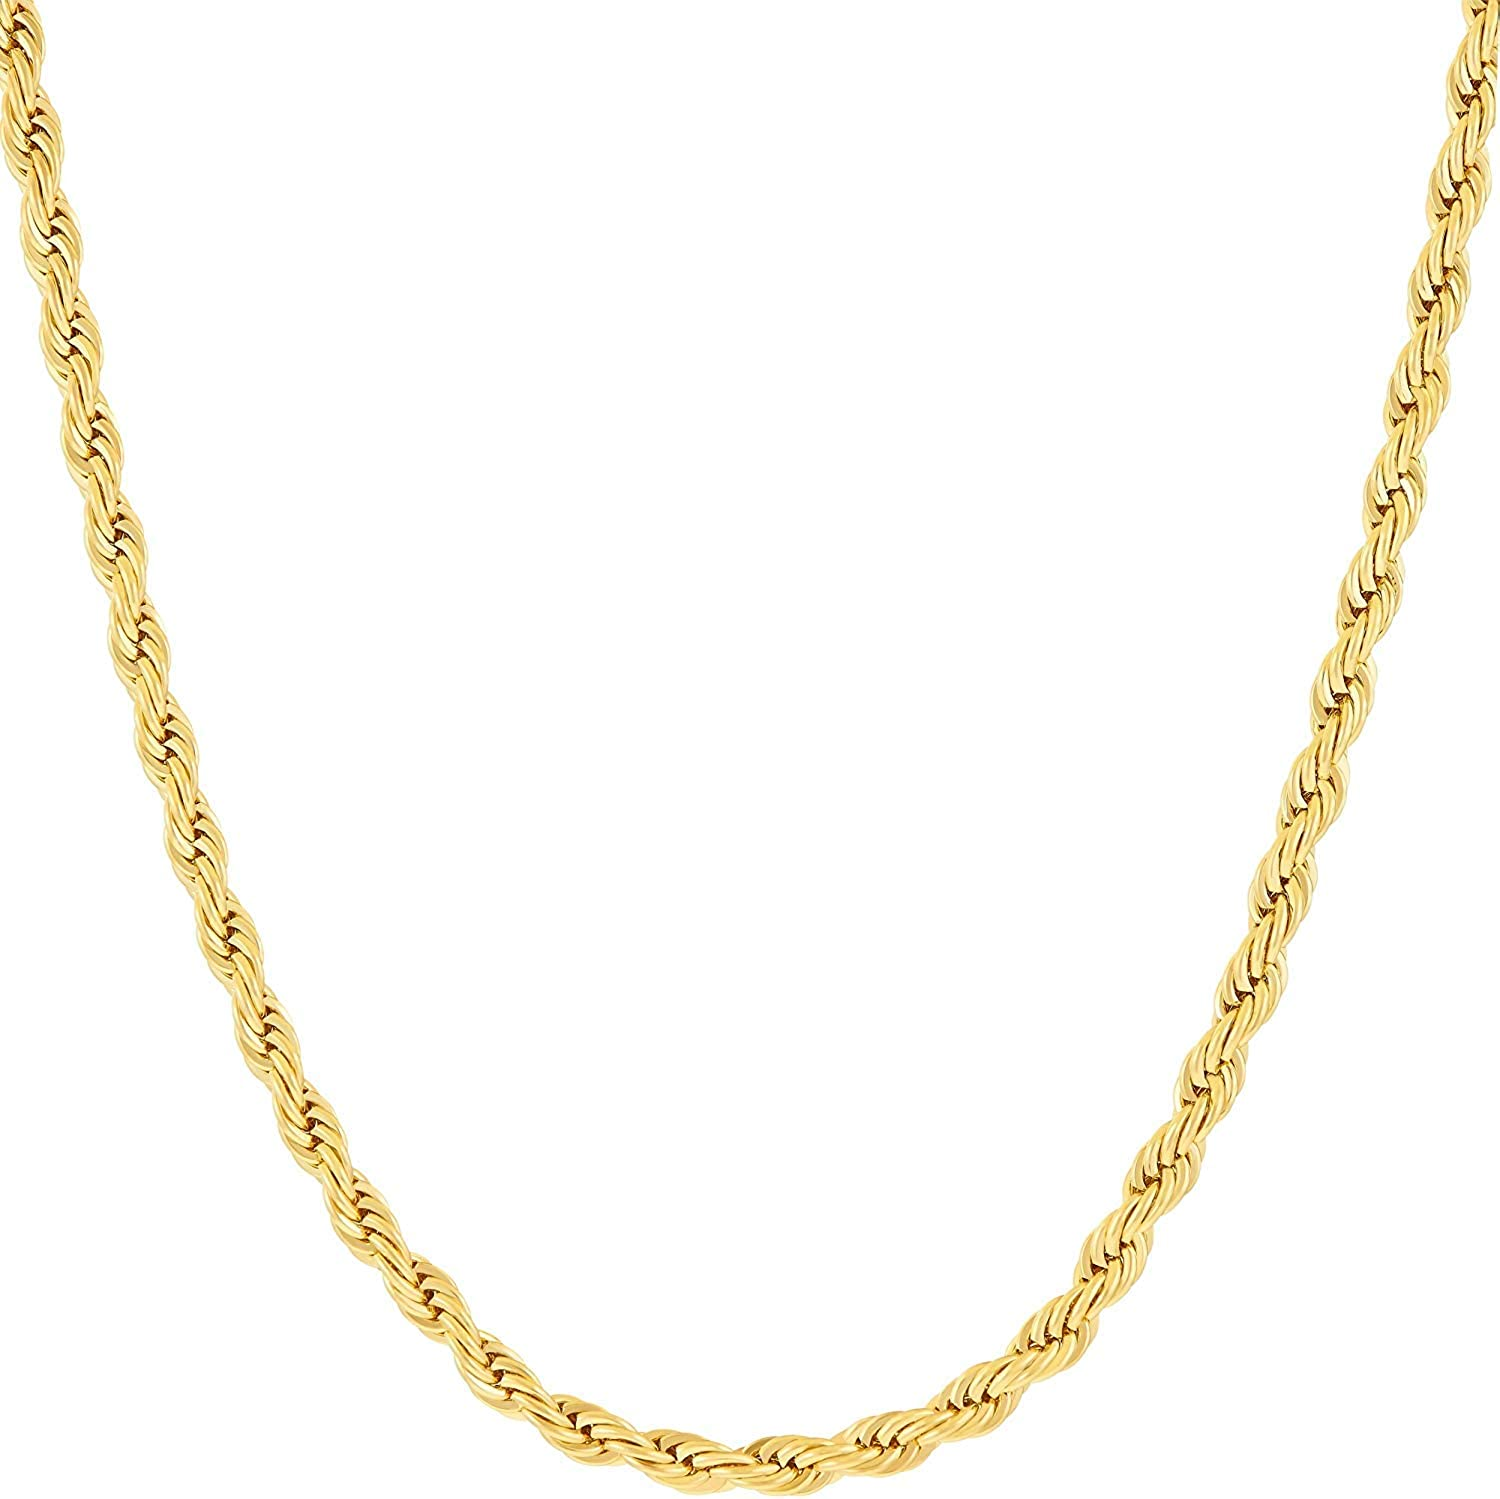 Hollywood Jewelry Daily bargain sale 3mm Rope Chain Necklace Real New York Mall Gold 24k Plated f